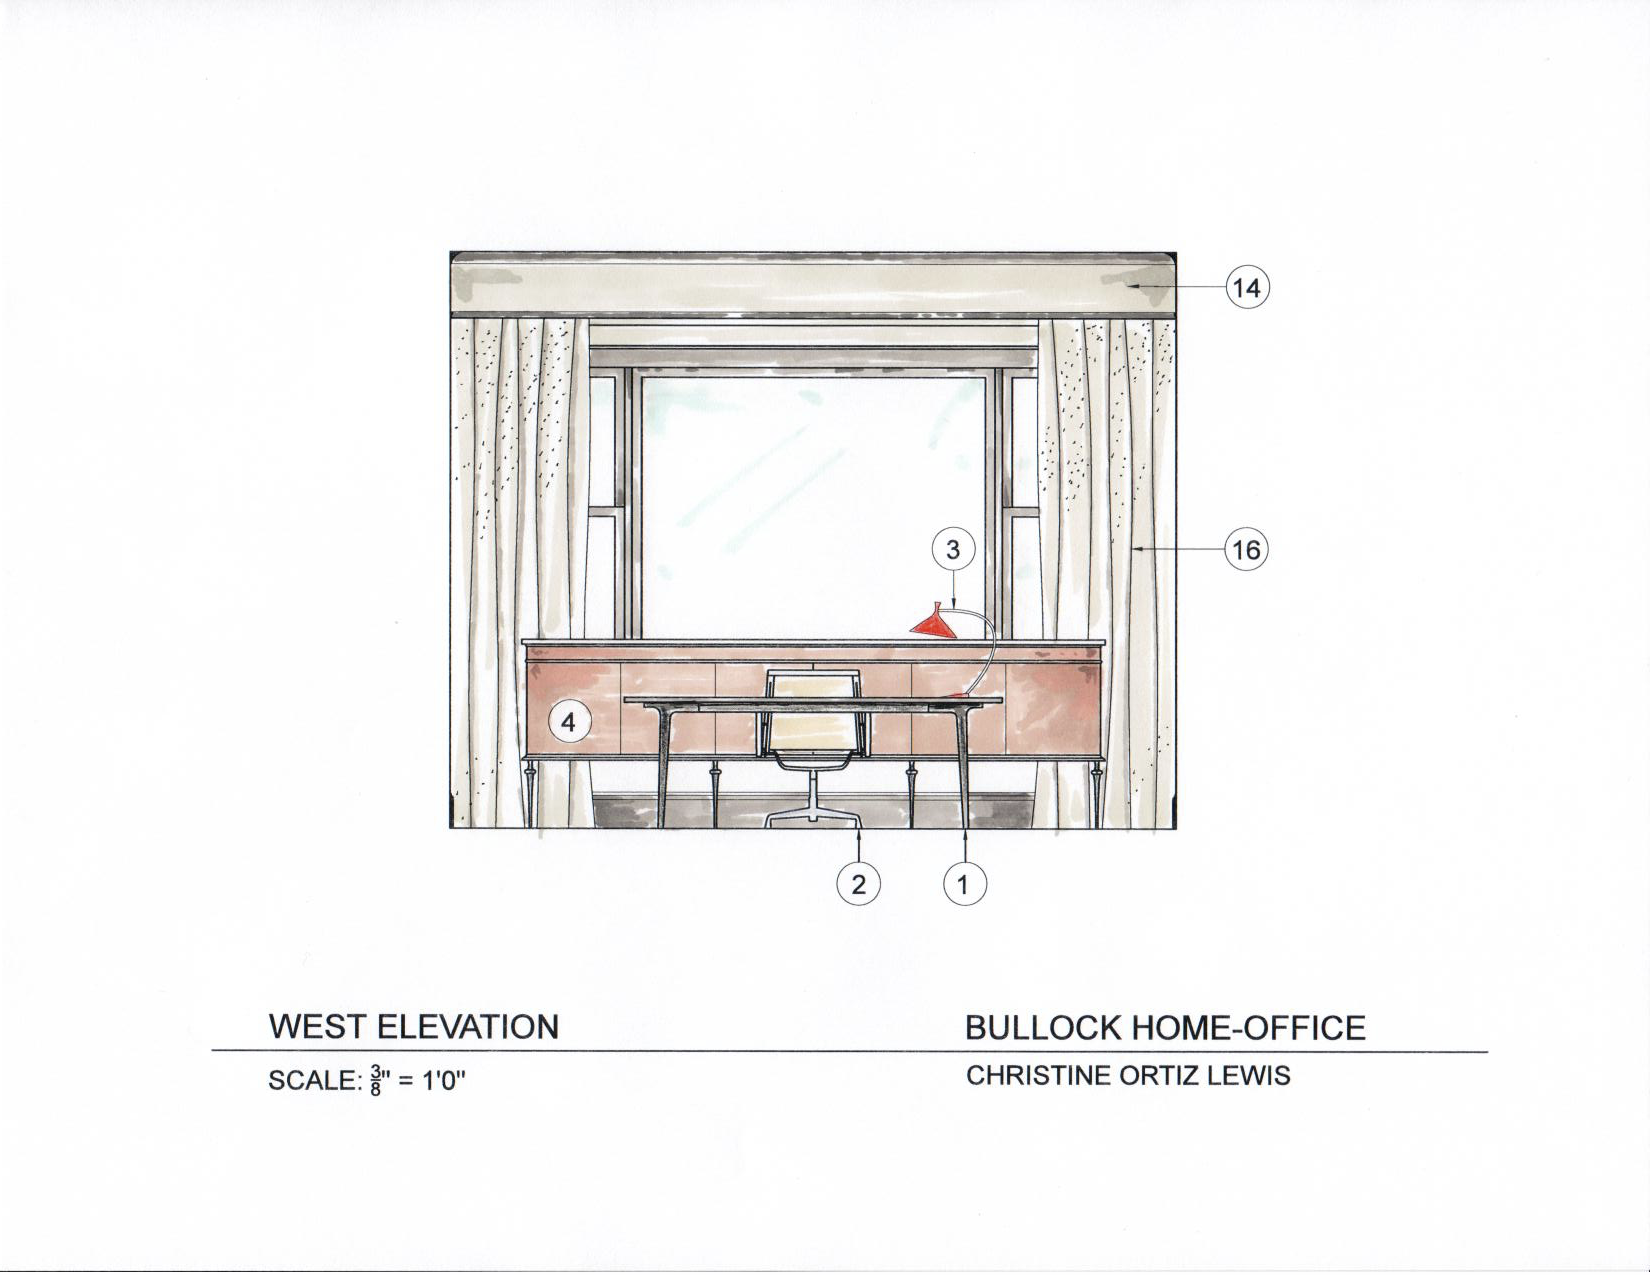 office desk drawing. oh! designs interiors, inc. drawing of client home office. desk/window office desk